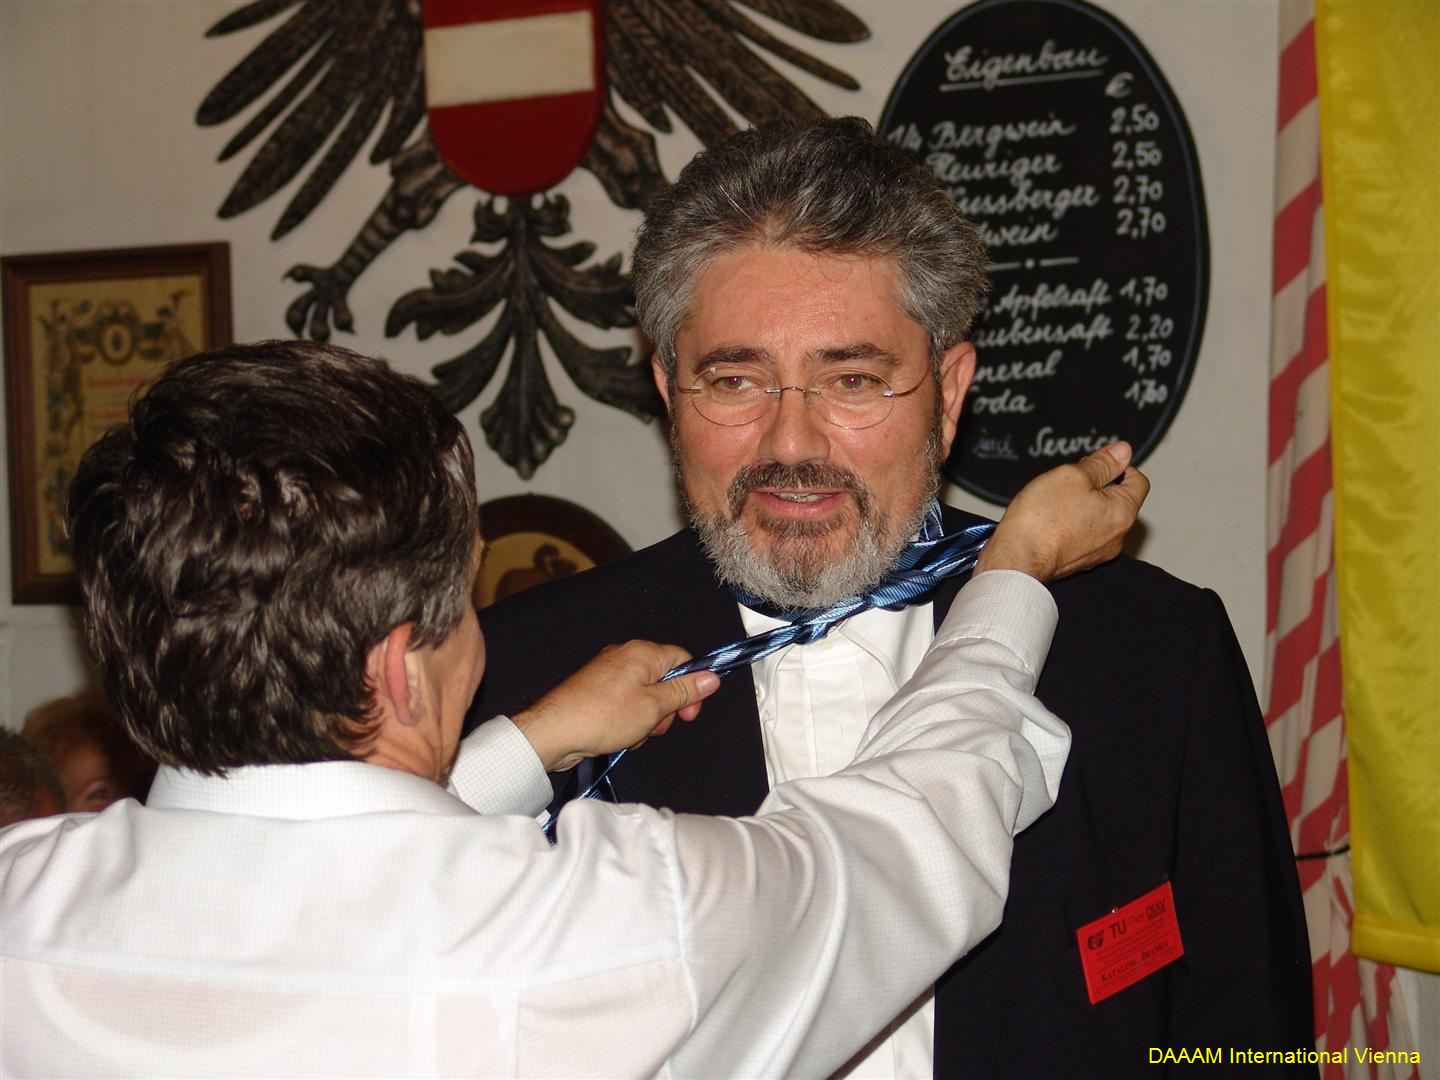 daaam_2006_vienna_dinner_recognitions_lectures_070